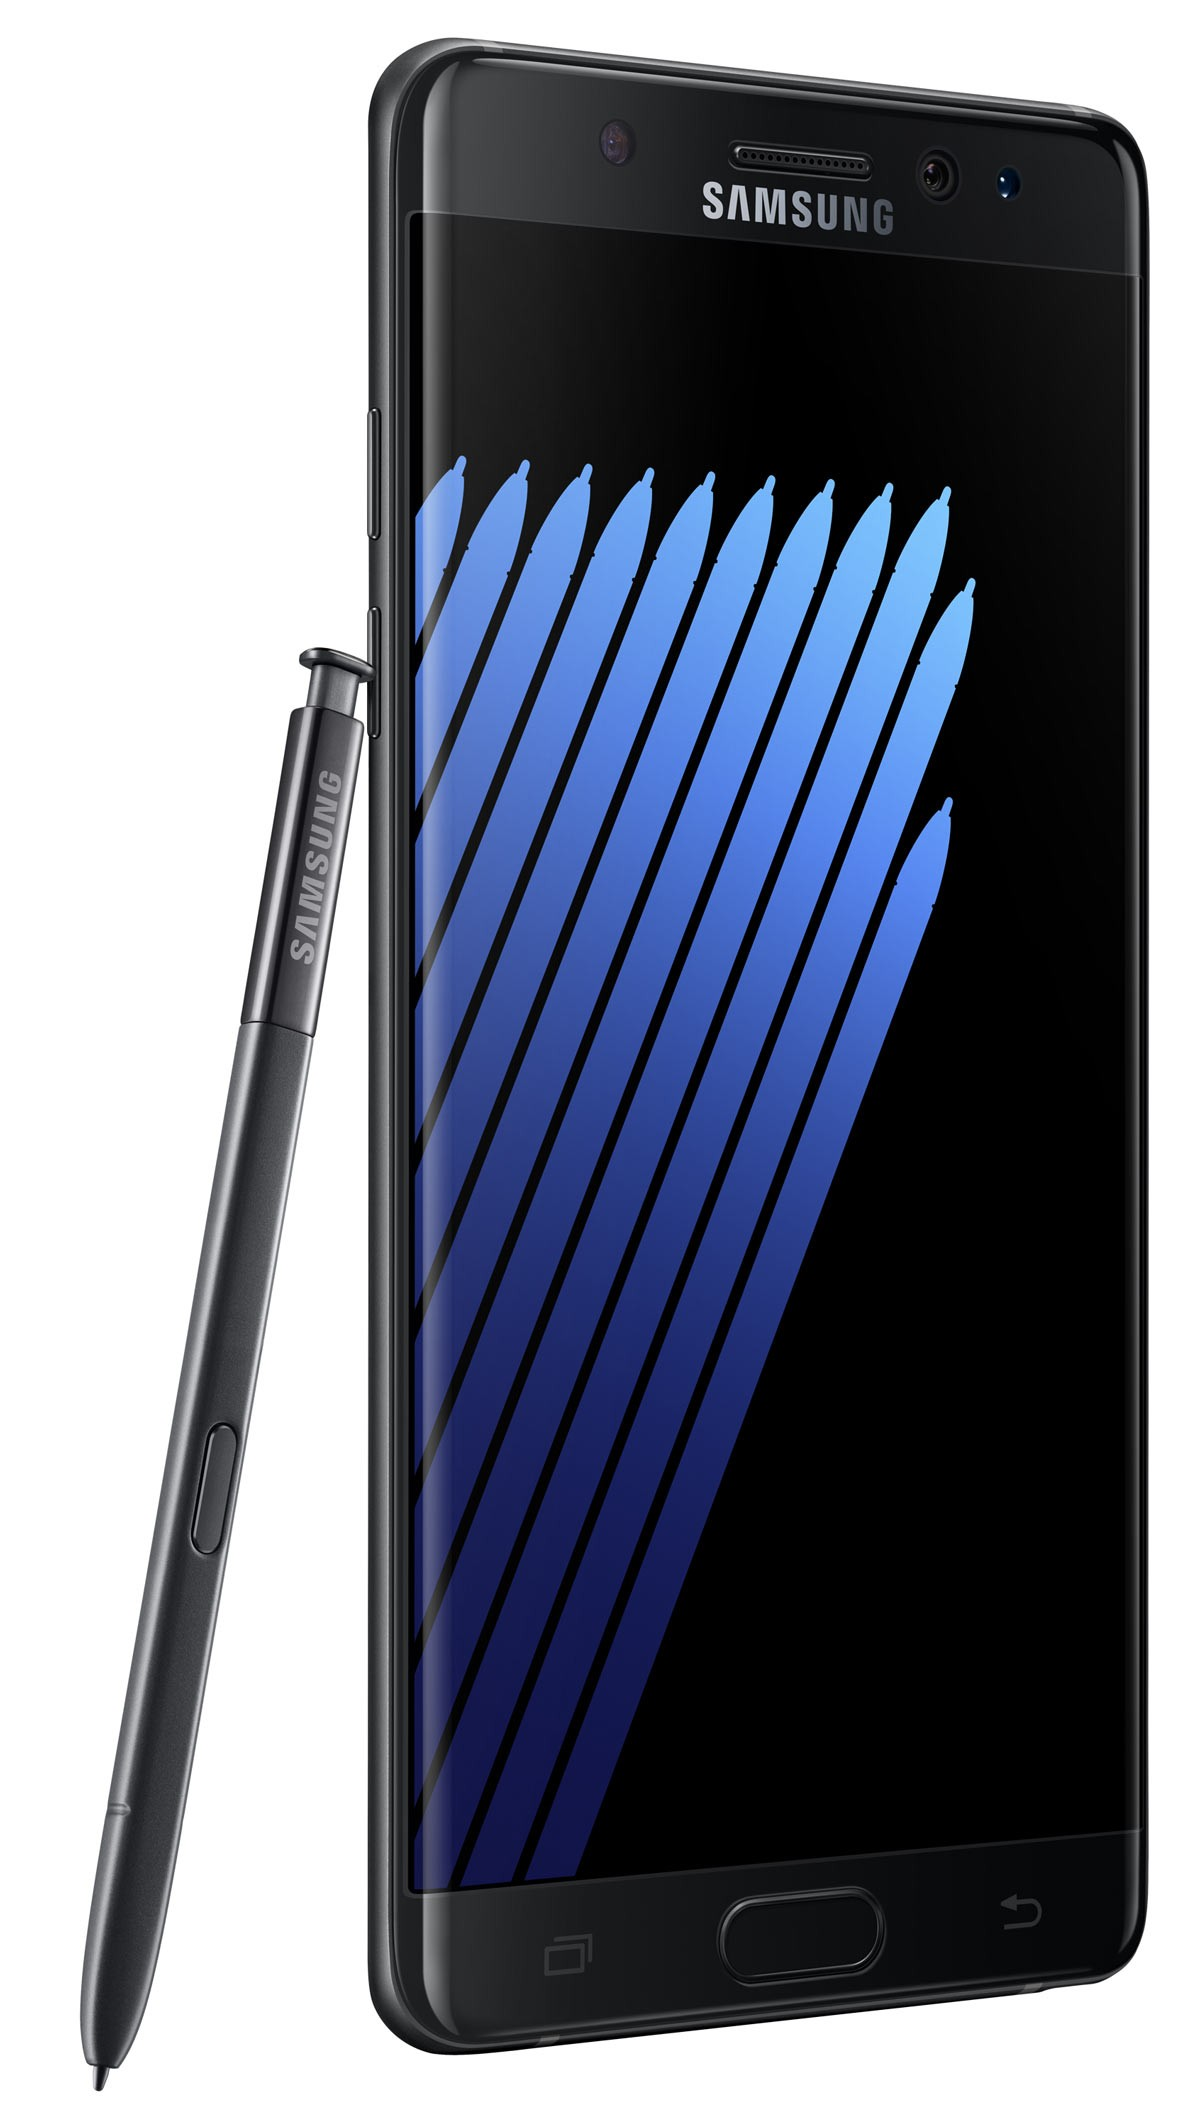 SAMSUNG - GALAXY NOTE 7 NOIR